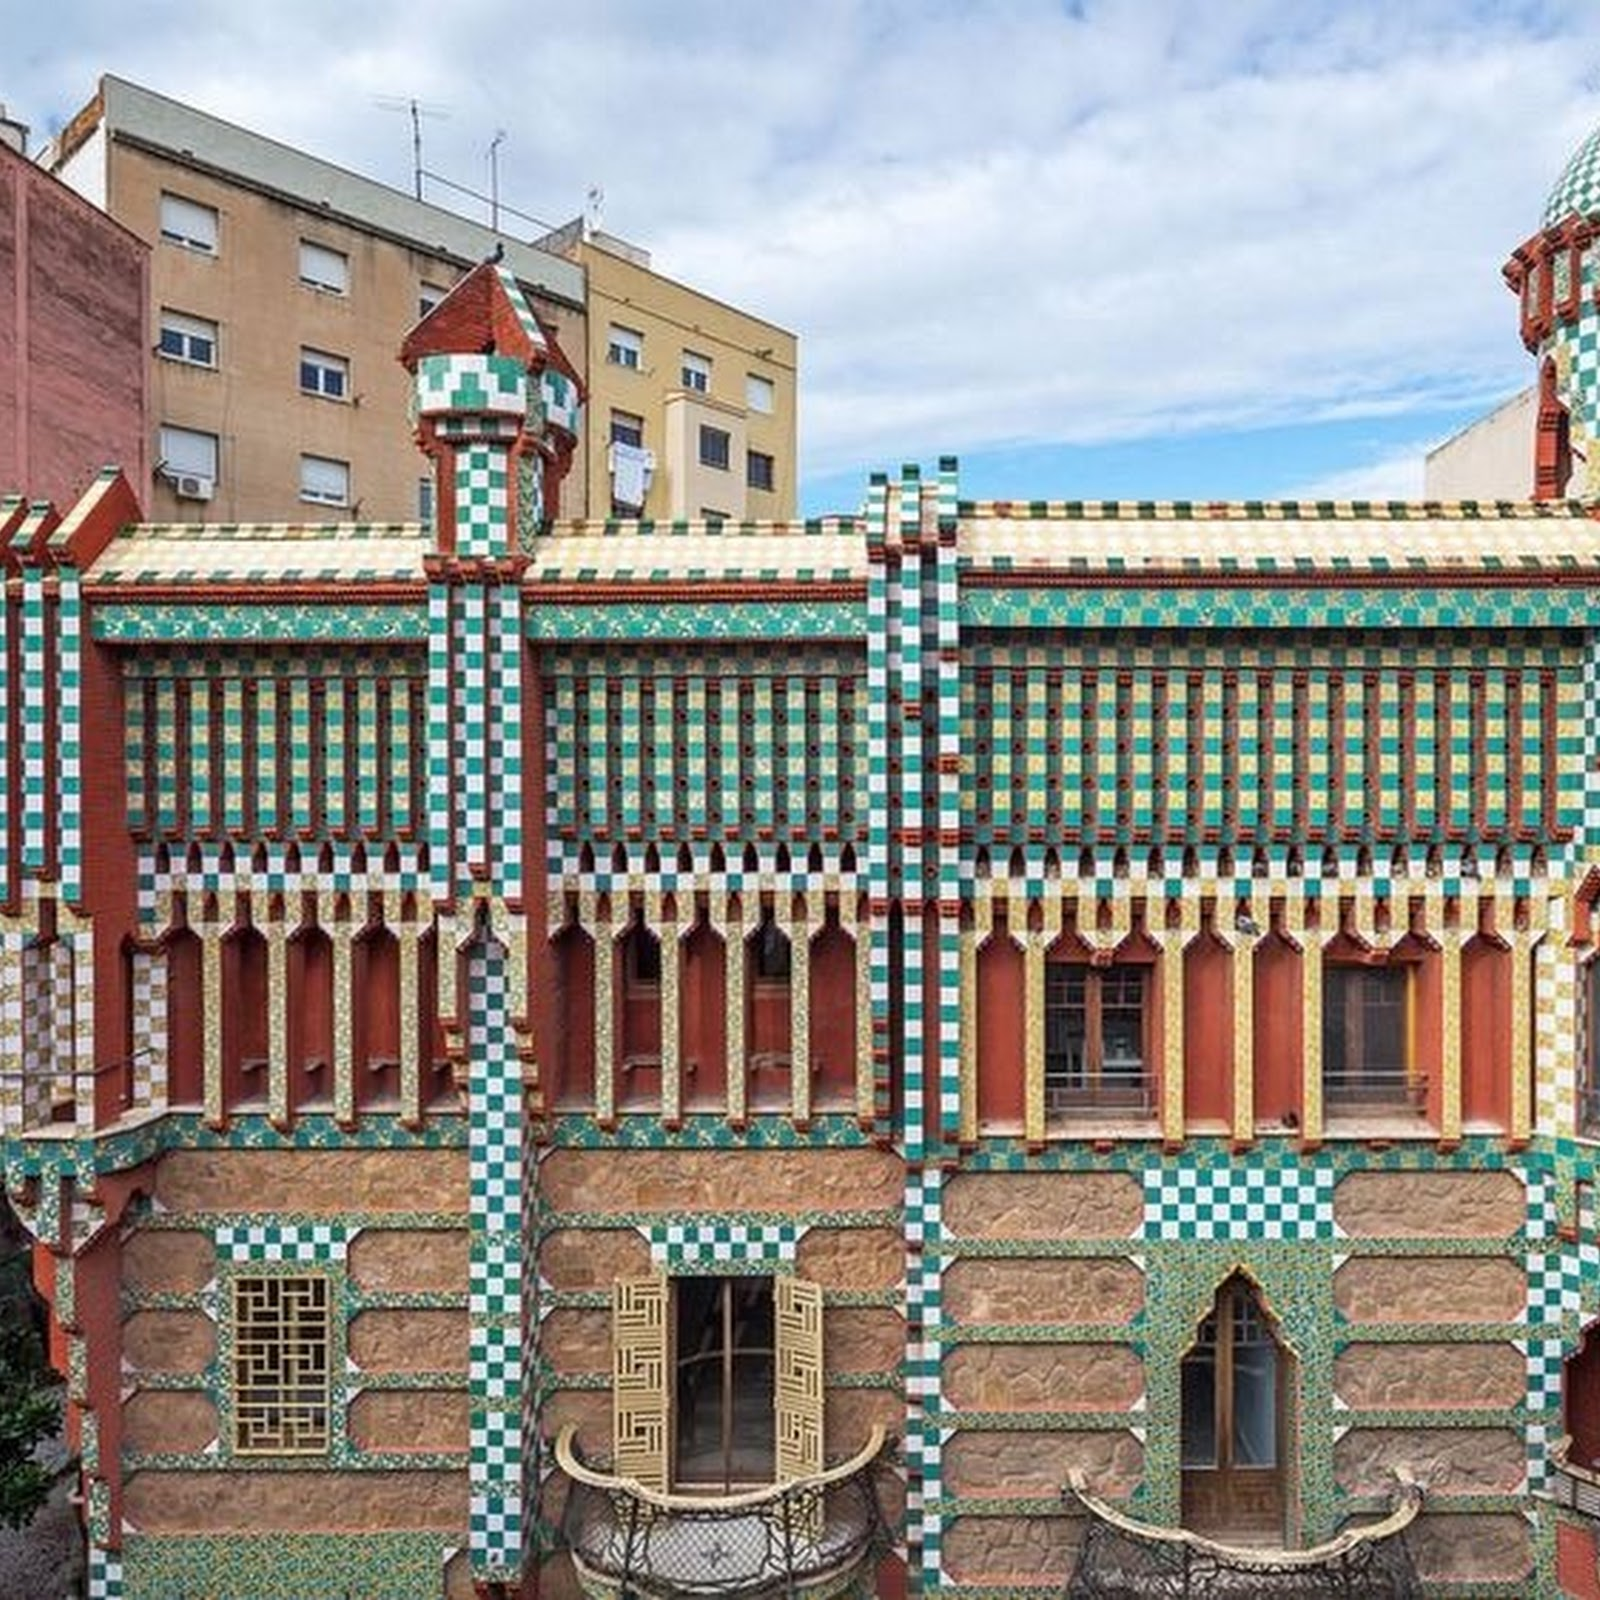 Casa Vicens: Gaudi's First Building Opens To Public